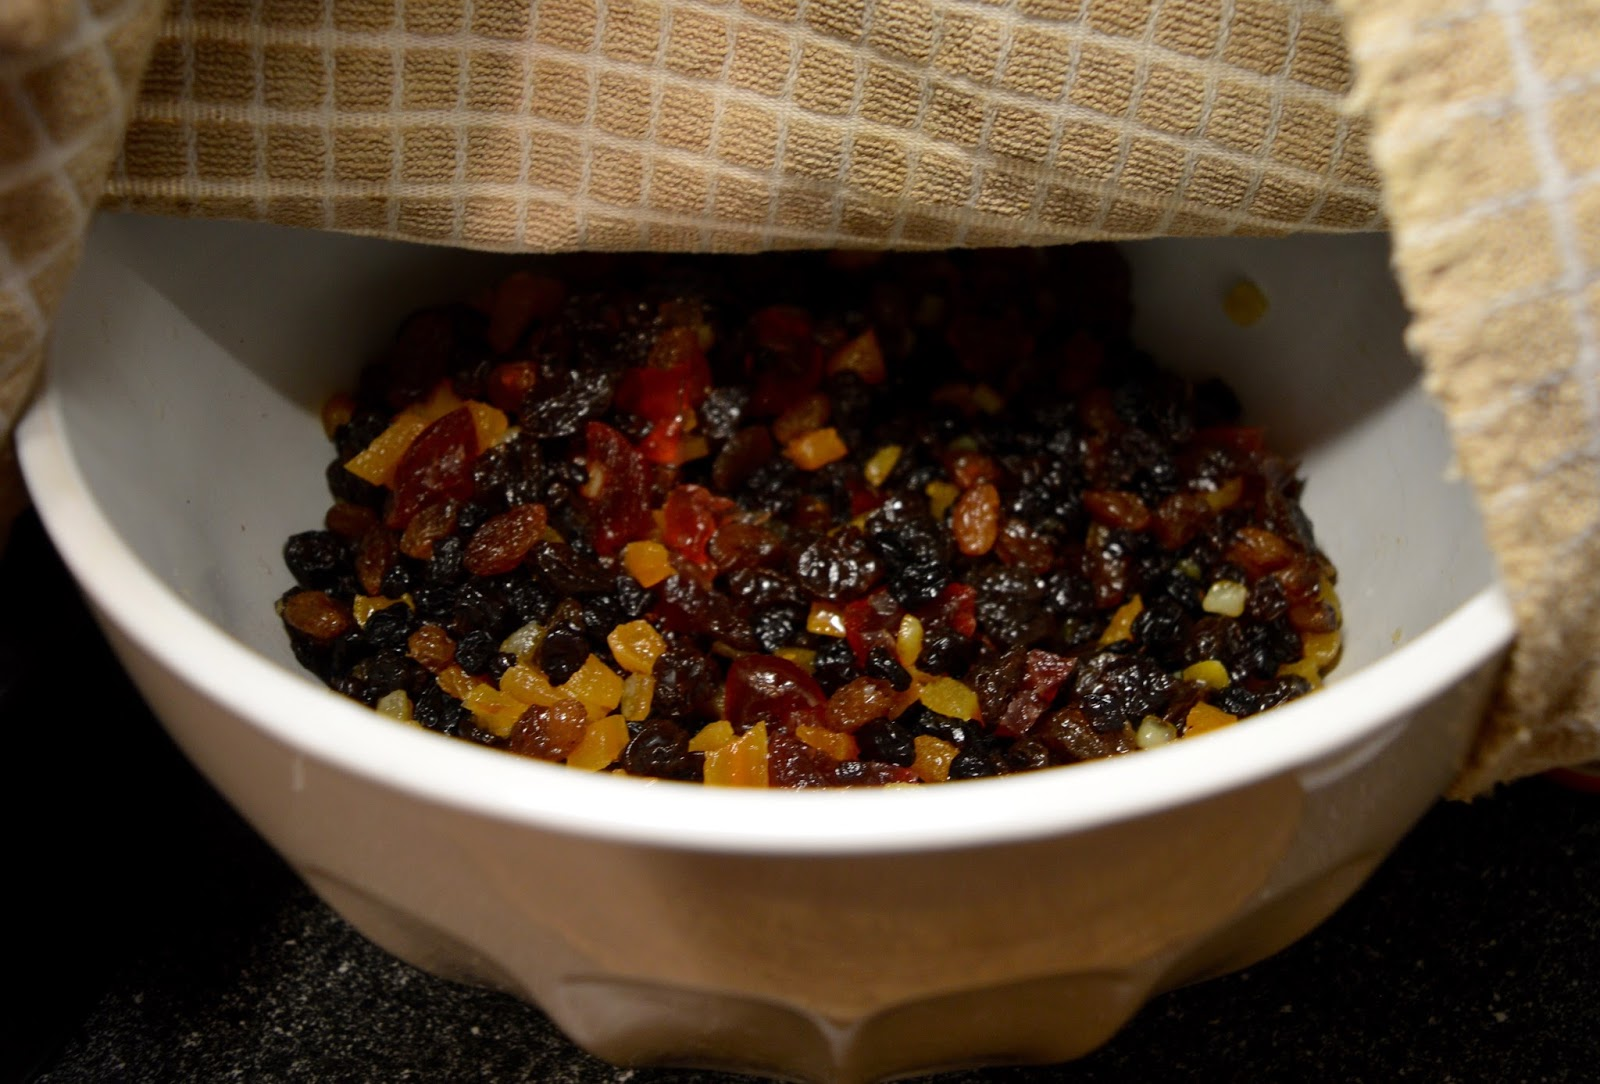 Easy Classic Christmas Cake Recipe (Inspired by Mary Berry) - soak fruit in amaretto overnight